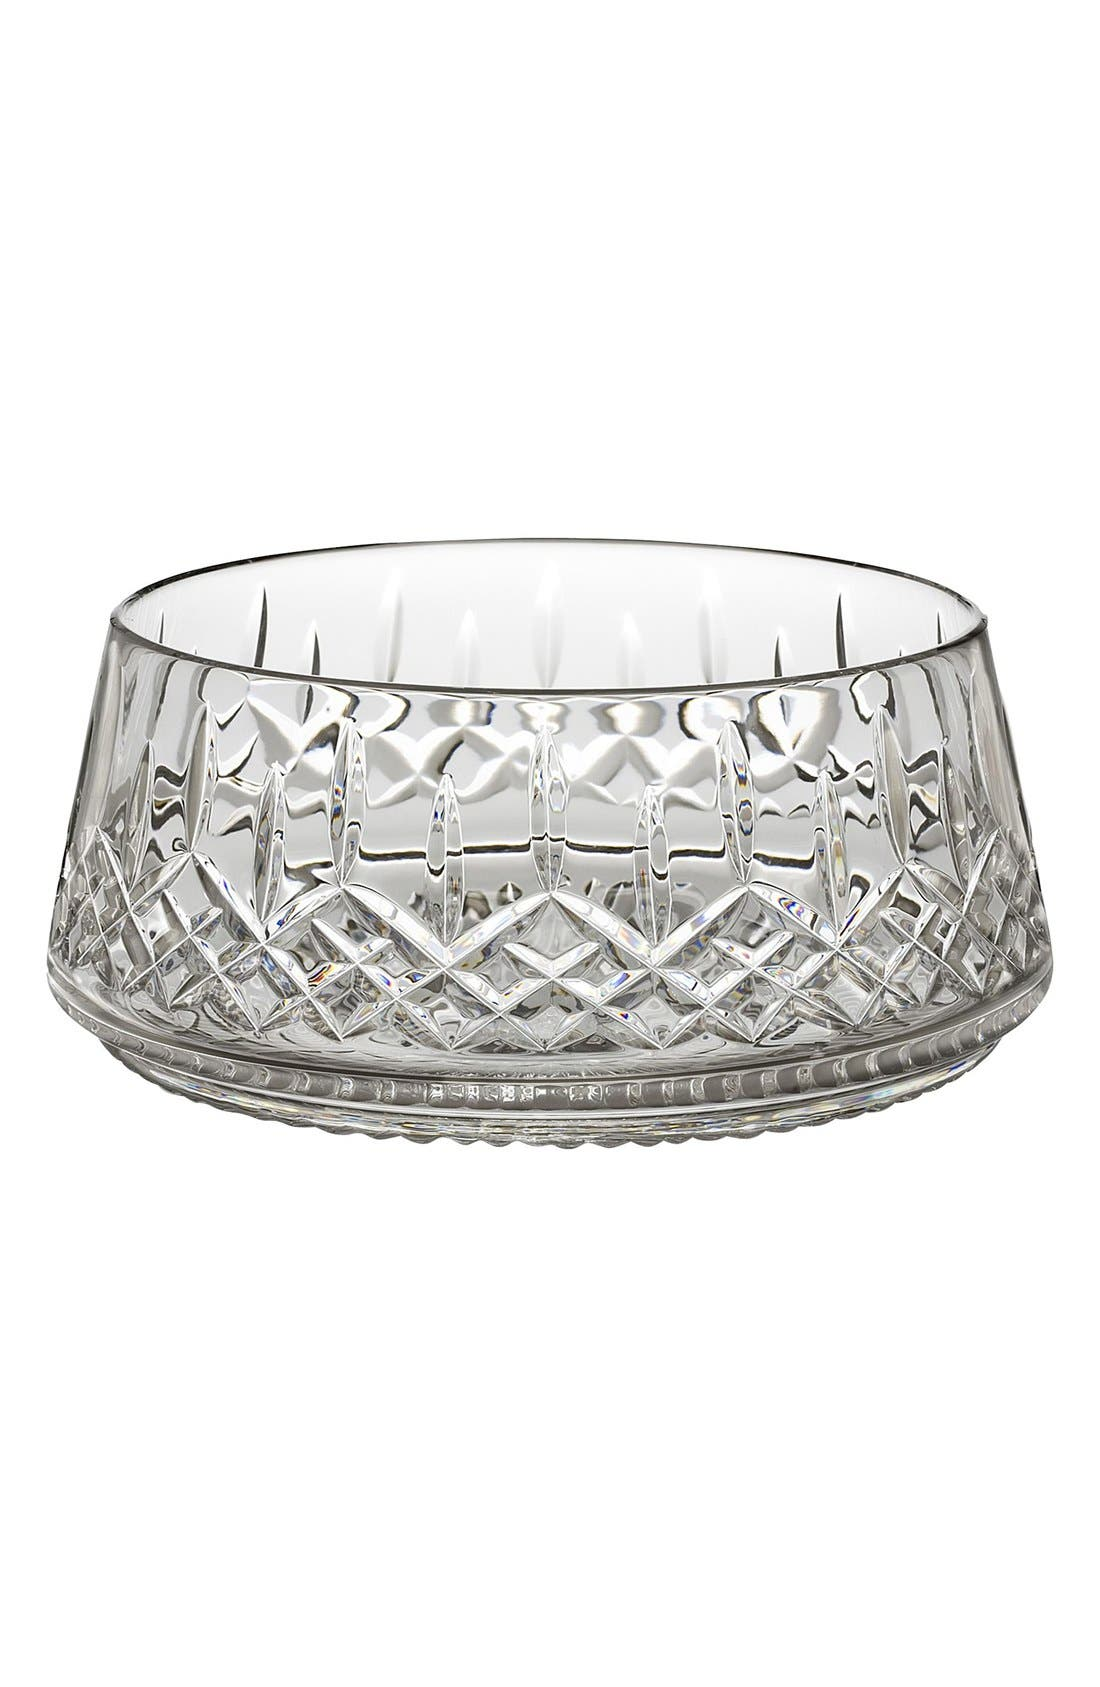 Waterford 'Lismore' Lead Crystal Salad Bowl